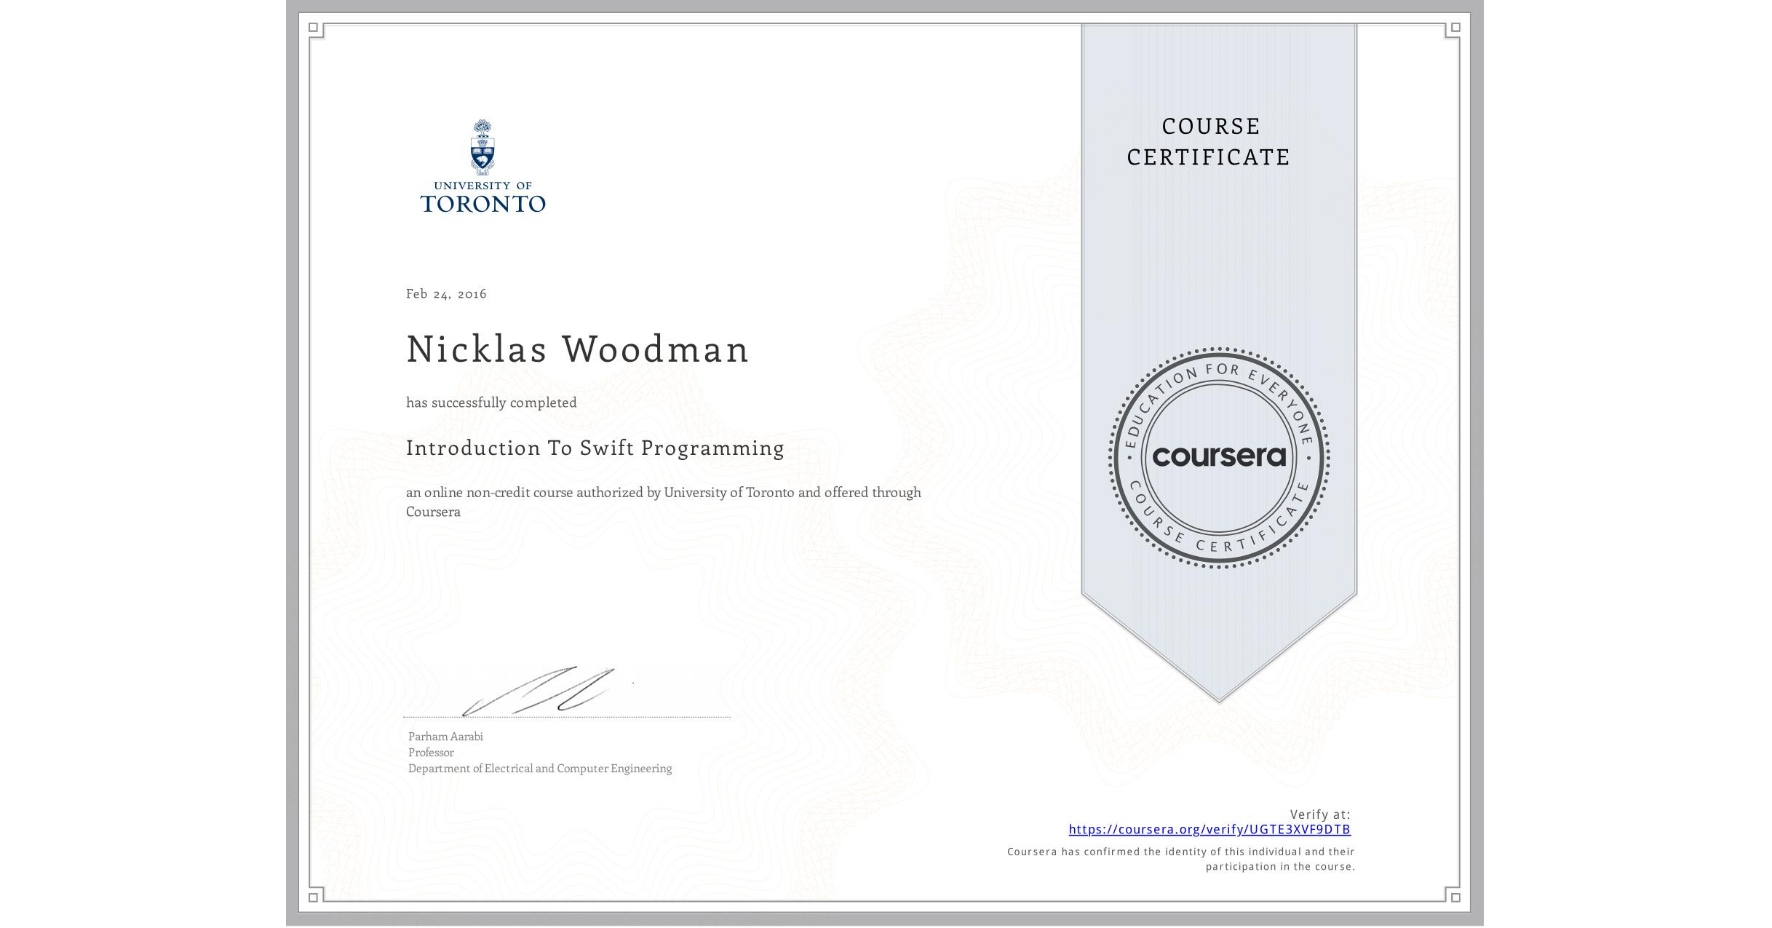 View certificate for Nicklas Woodman, Introduction To Swift Programming, an online non-credit course authorized by University of Toronto and offered through Coursera